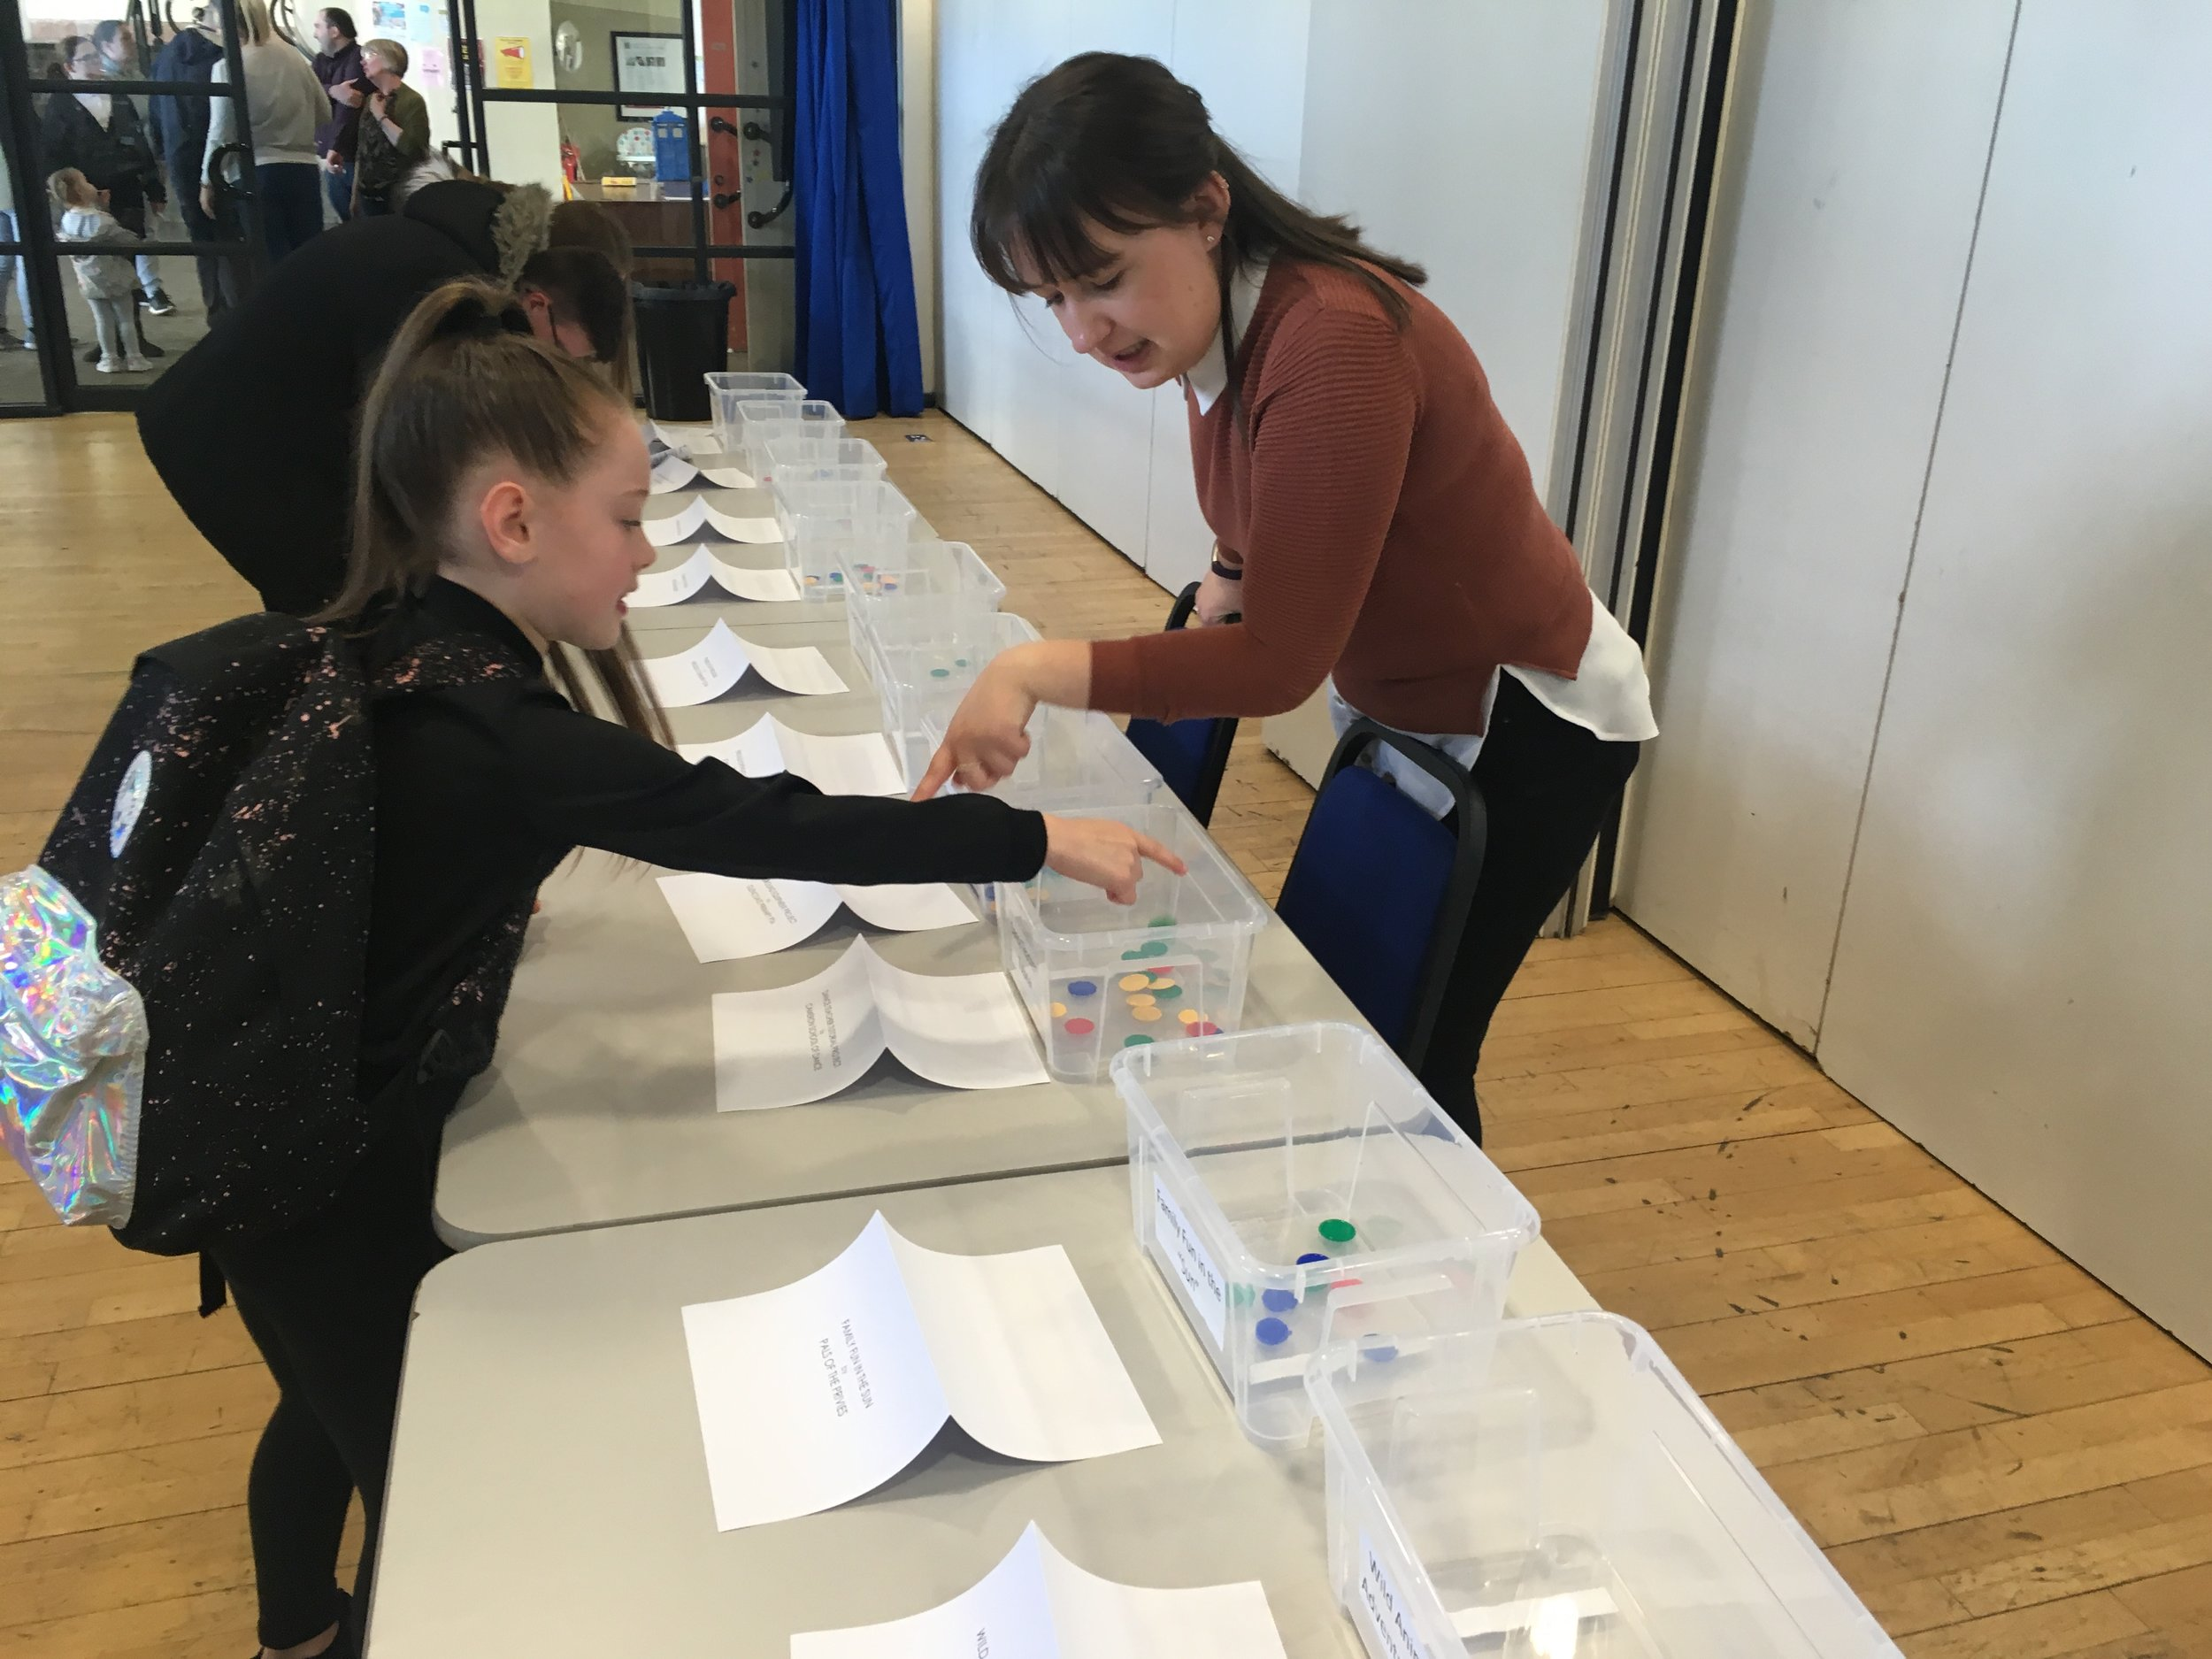 Voting in action